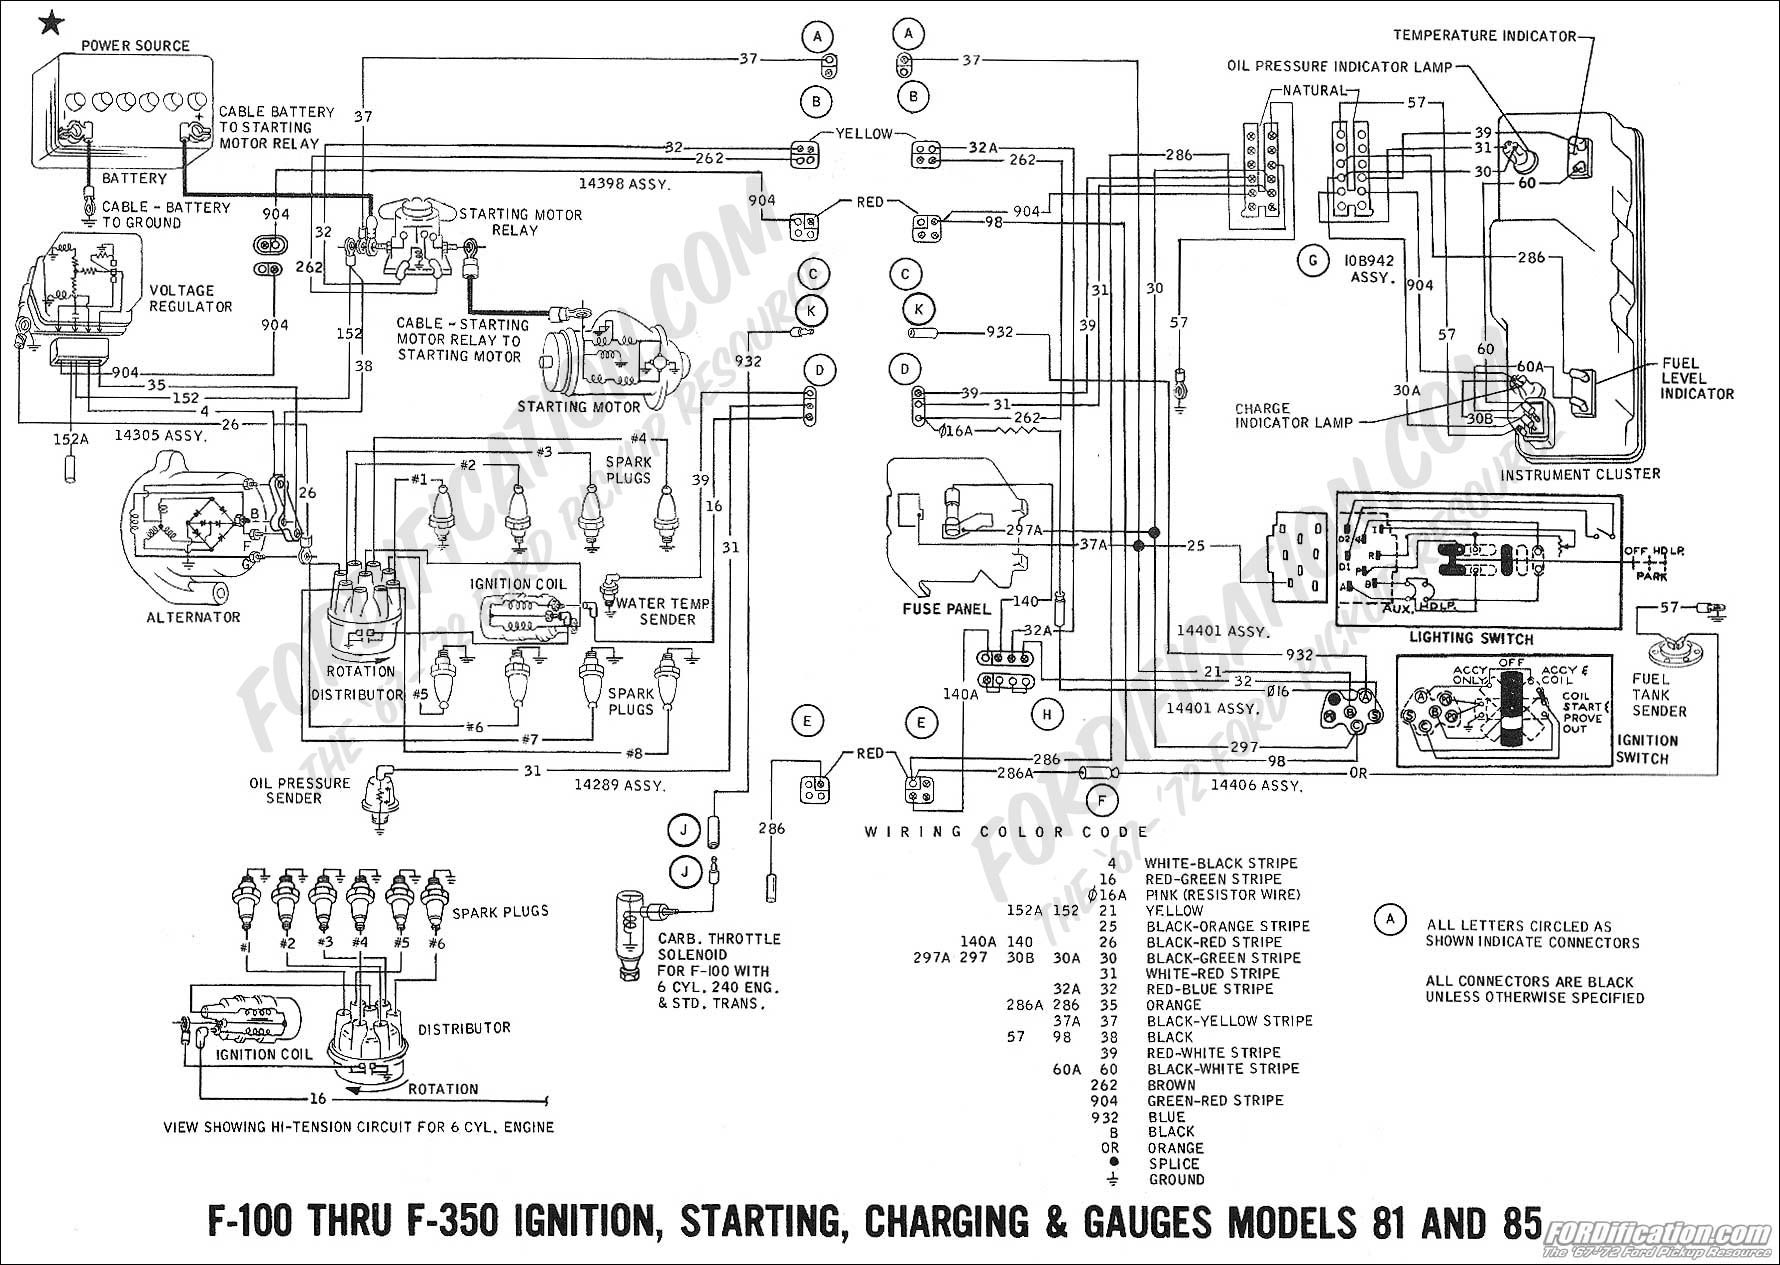 Ford Taurus Engine Diagram ford Charging System Wiring Diagram Further 1970 ford Truck Wiring Of Ford Taurus Engine Diagram